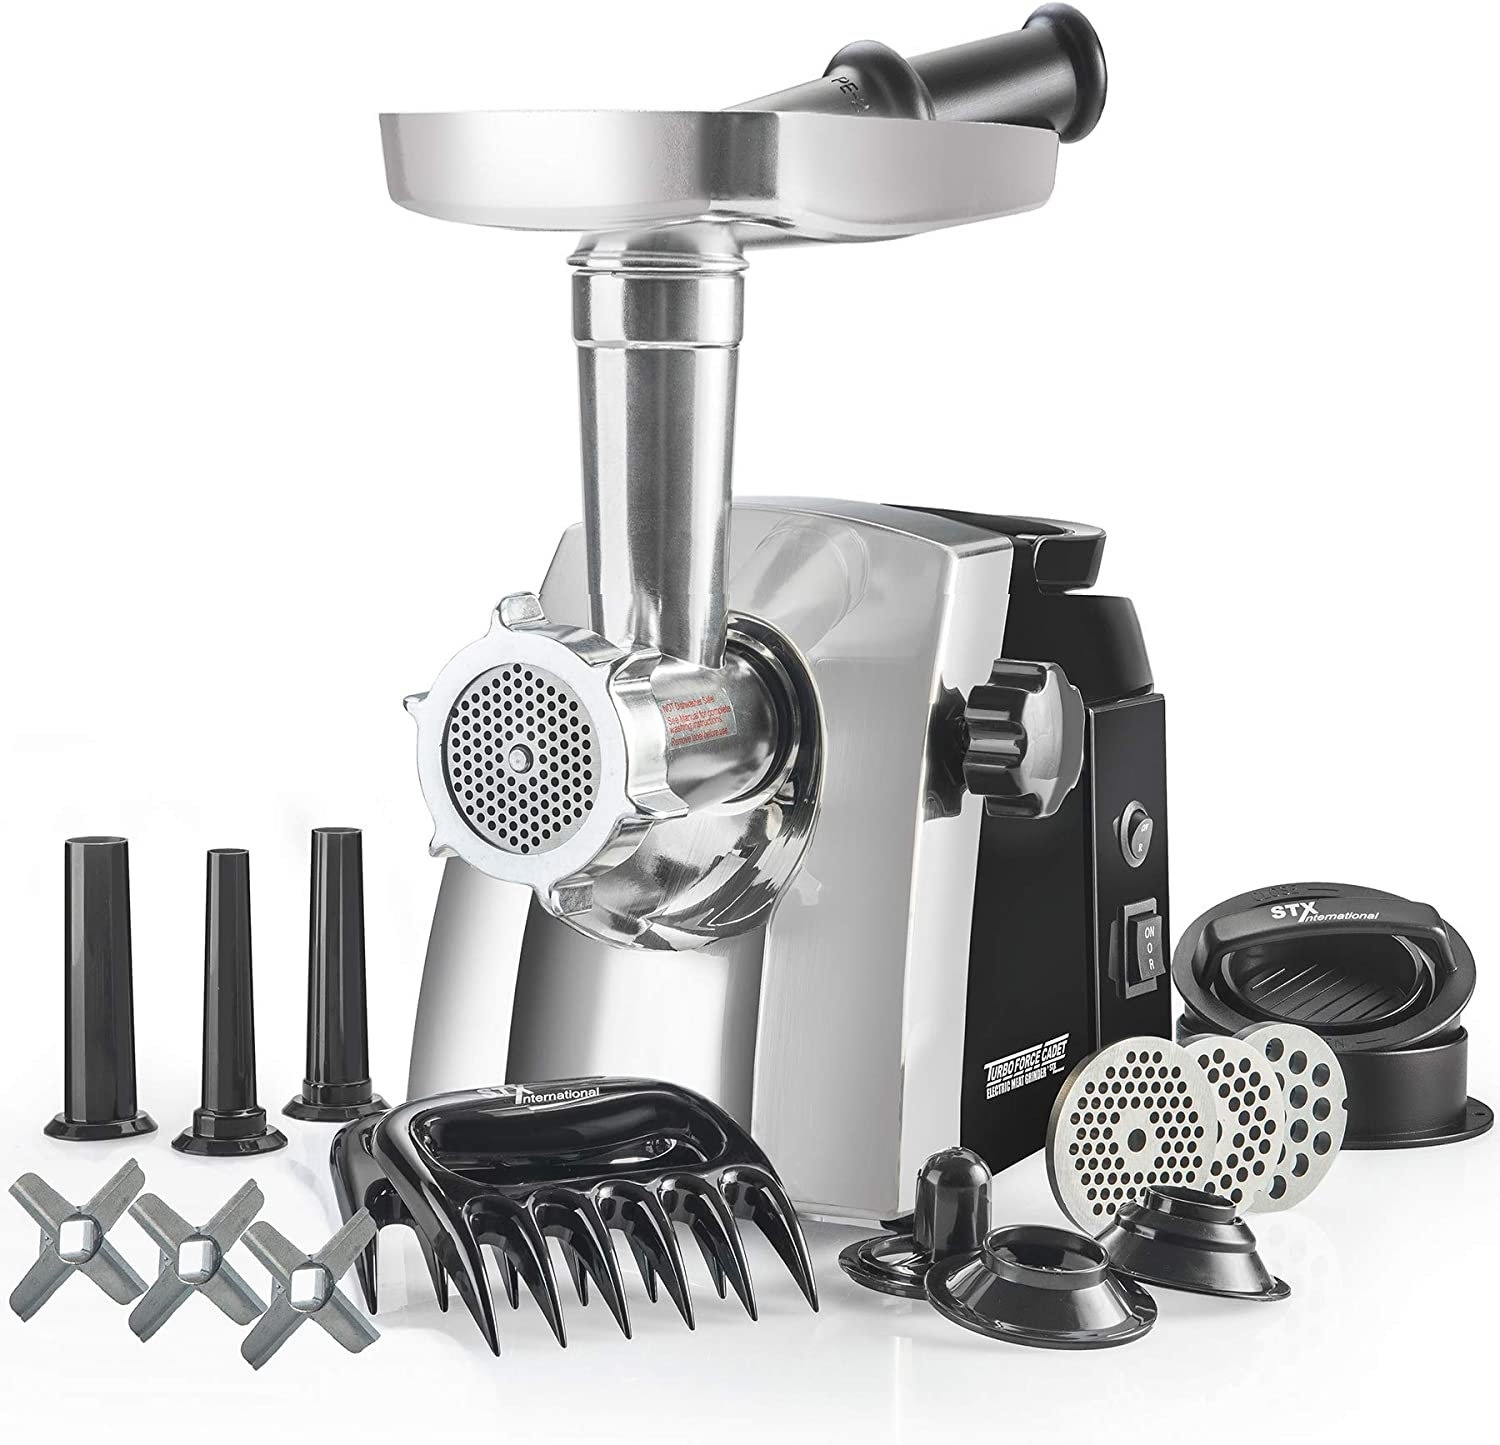 STX Turboforce Cadet - Platinum Edition - Electric Meat Grinder & Sausage Stuffer - 3 Grinding Plates, 3 S/S Blades, 3 Sausage Tubes, 1 Kubbe Maker, 2 Meat Claws and Burger-Slider Press